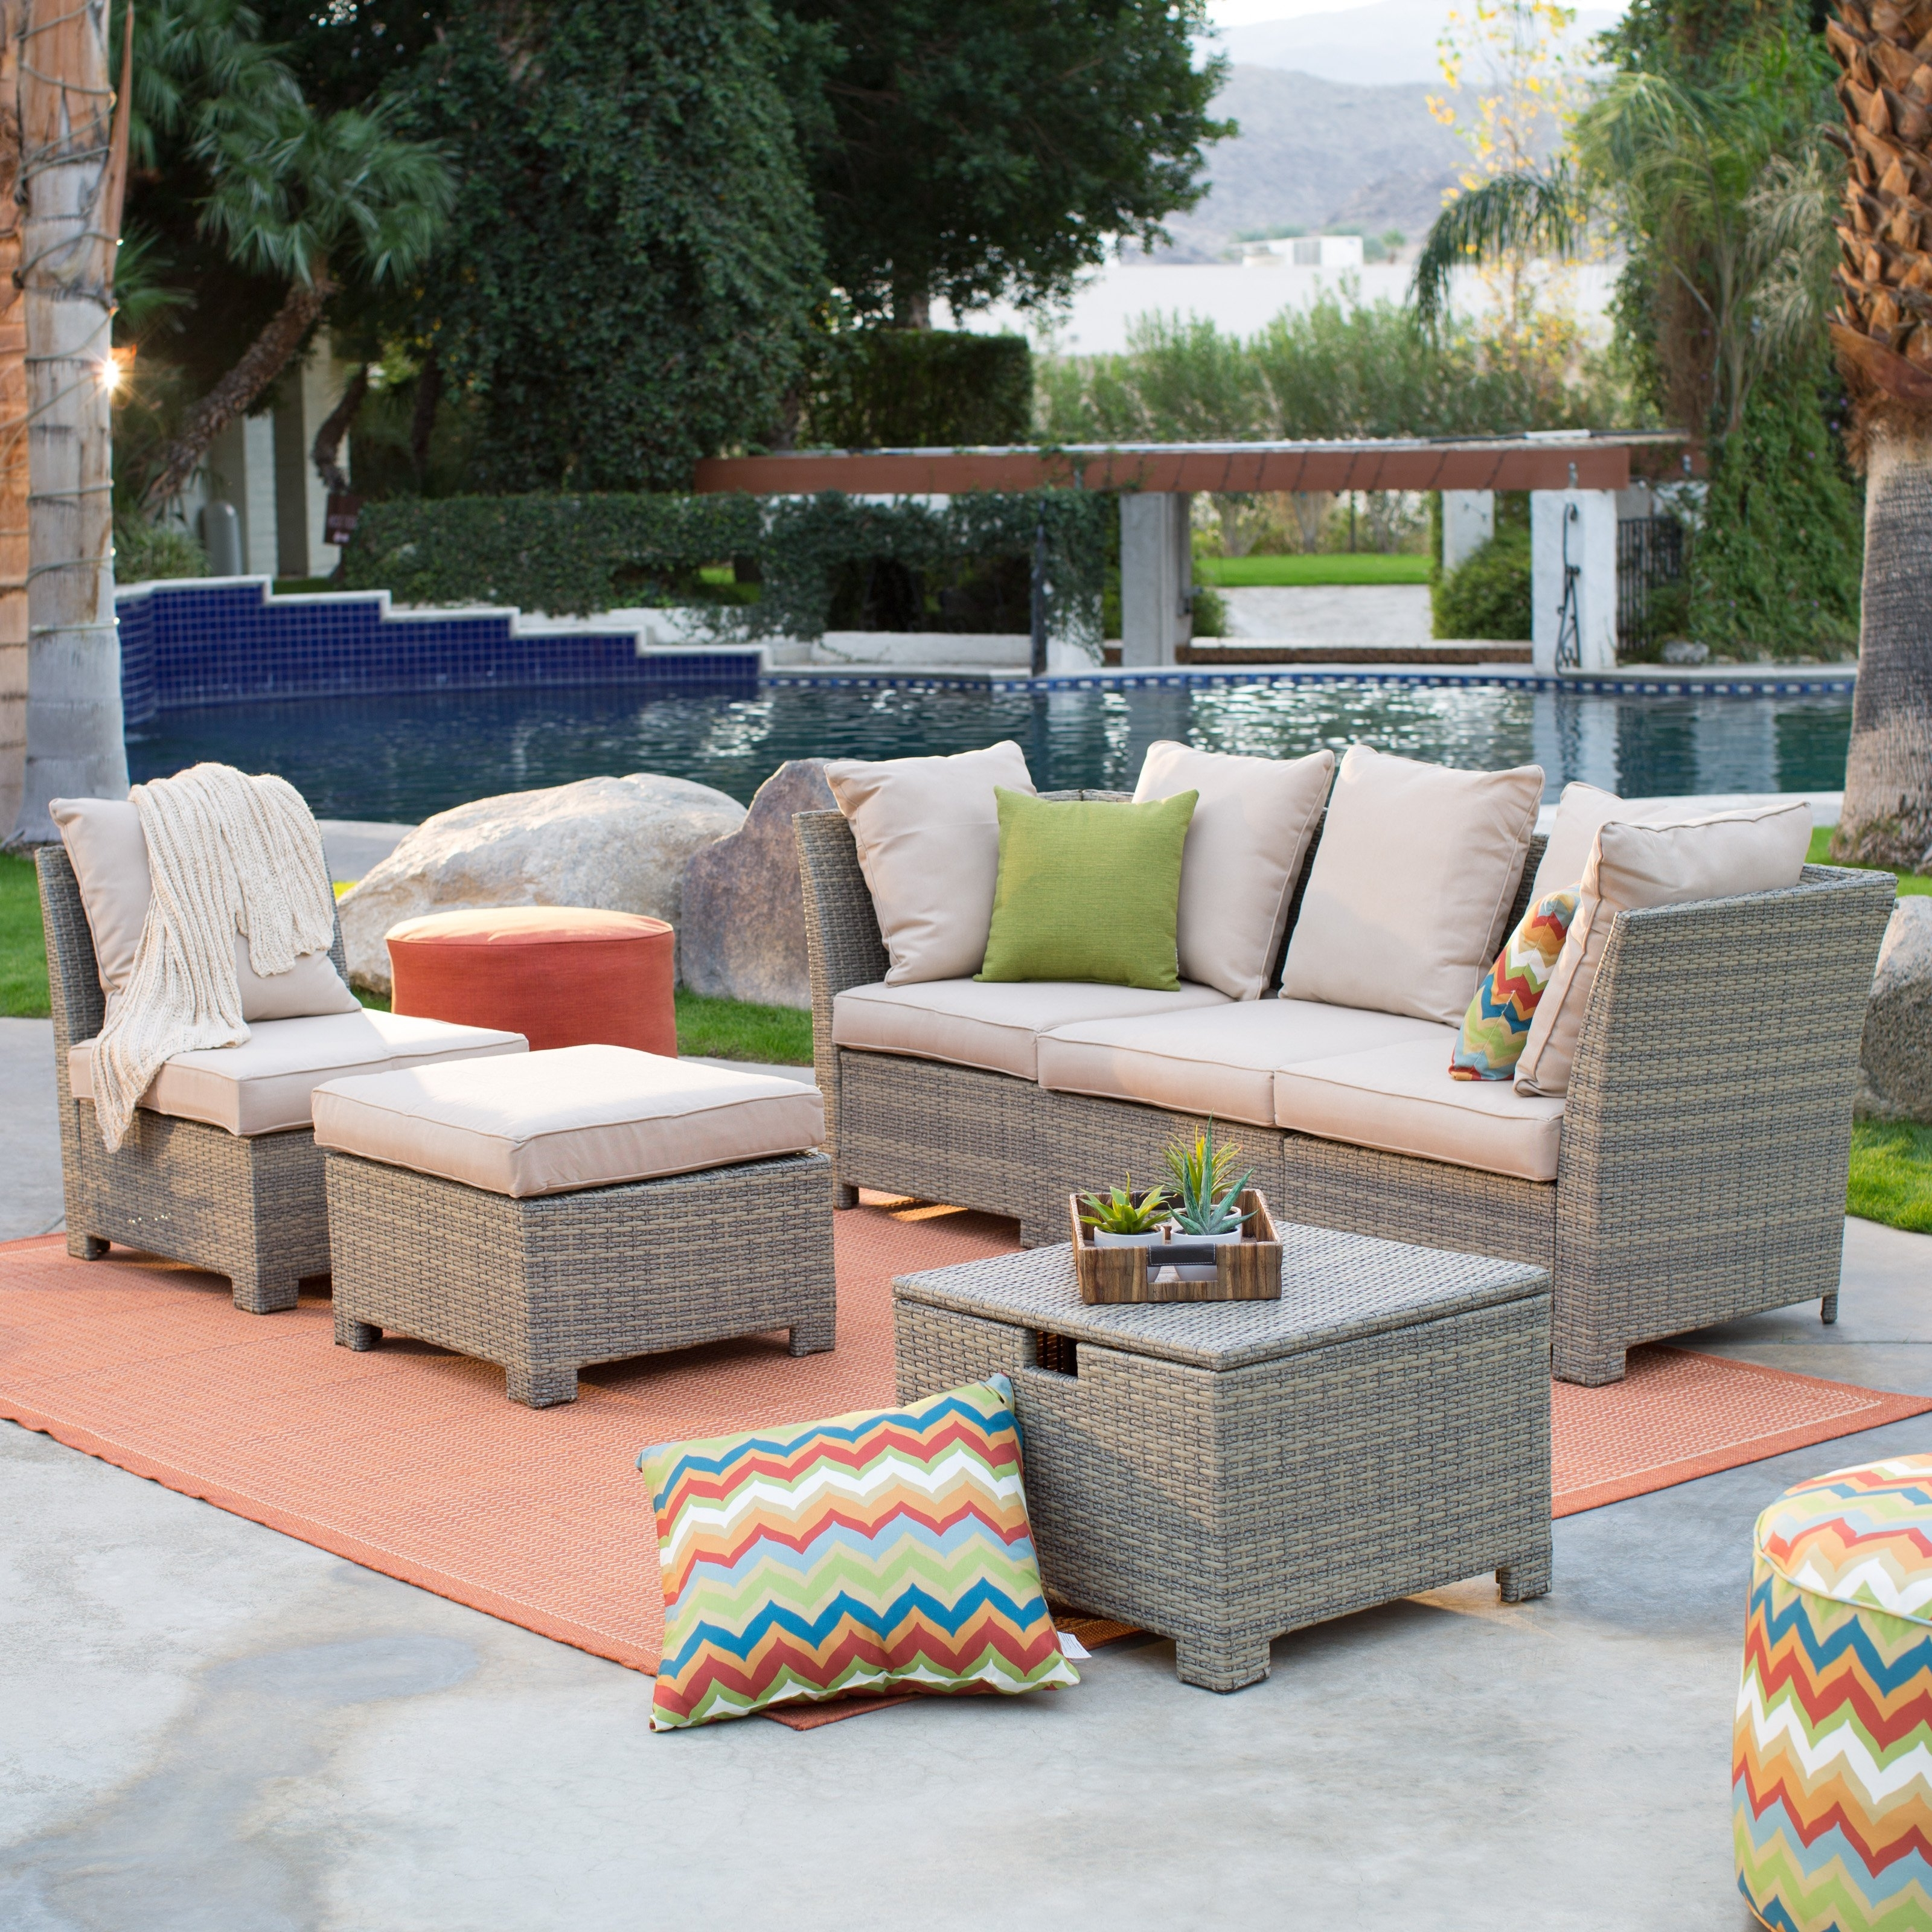 Conversation Patio Sets With Outdoor Sectionals Regarding Well Liked Coral Coast South Isle All Weather Wicker Natural Outdoor (View 7 of 20)